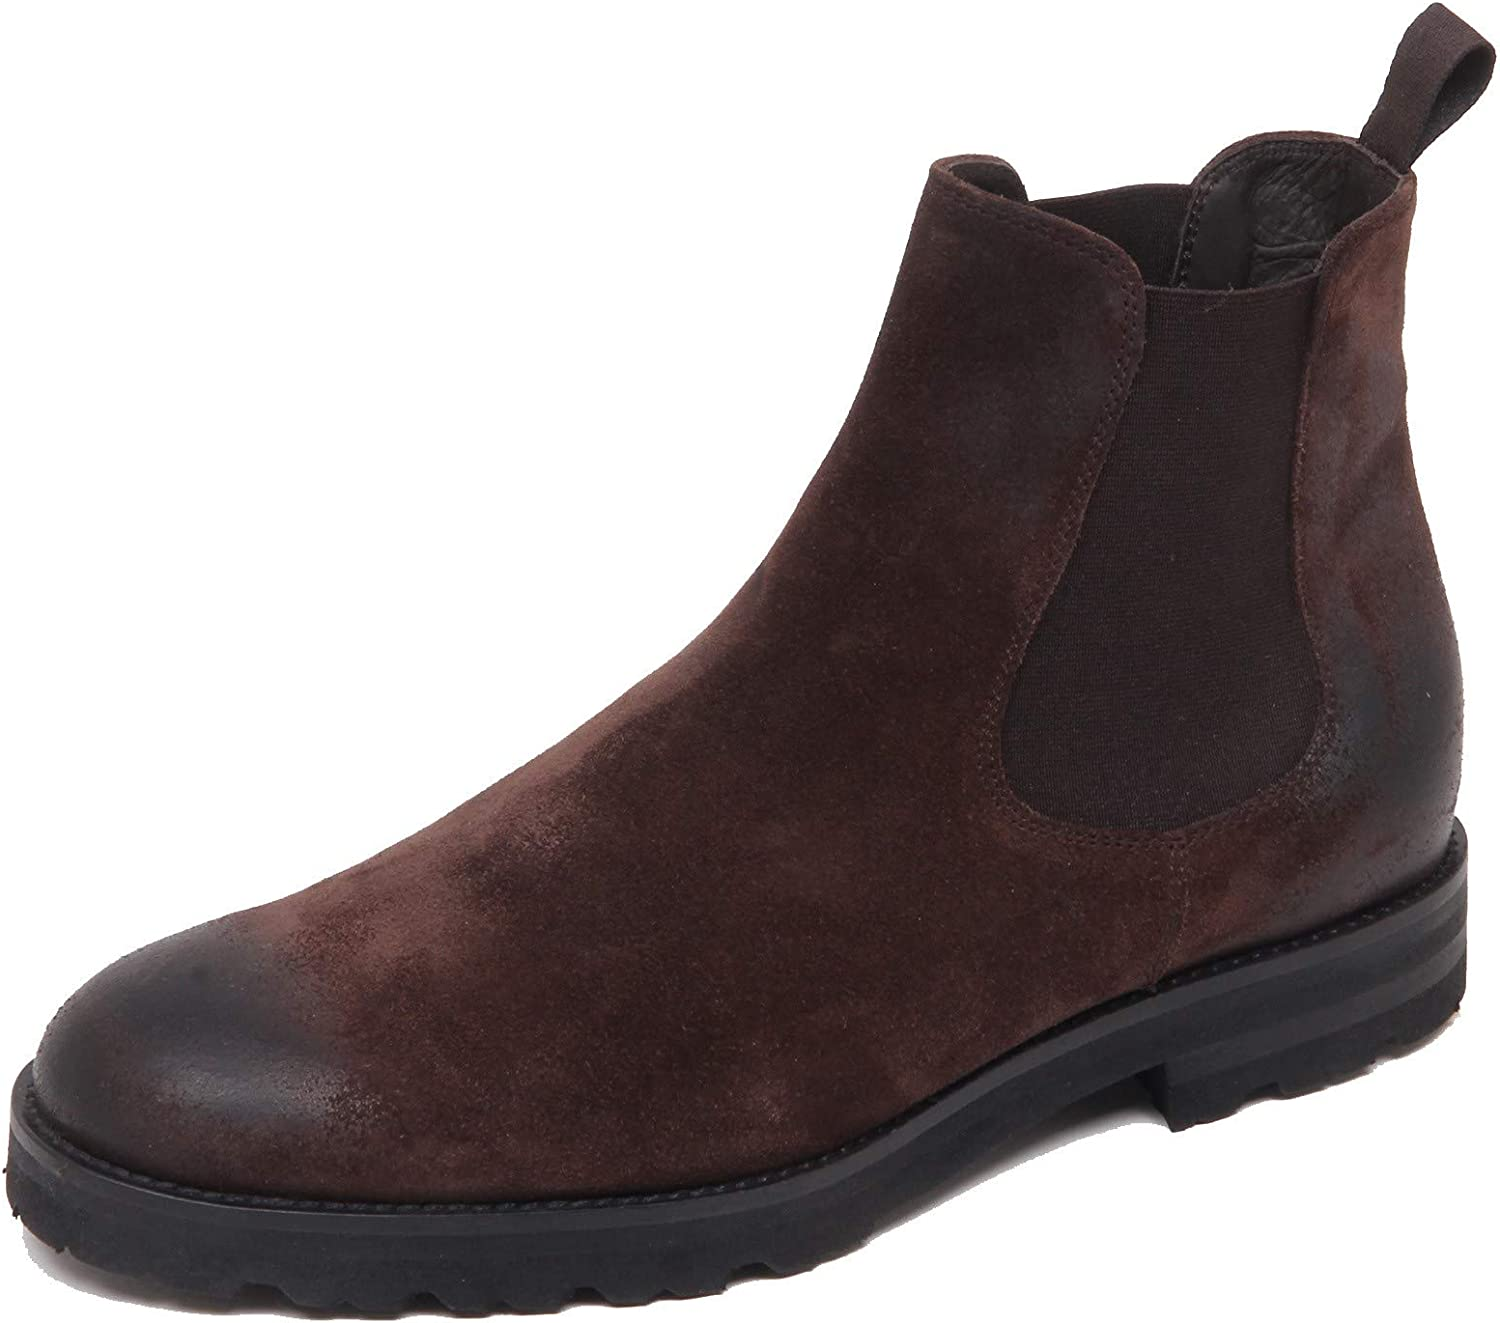 CARACCIOLO F5438 Beatles Uomo Uomo Uomo Brown Scarpe Vintage Effect Boot Shoe Man B07P7TRS3C 782ef0